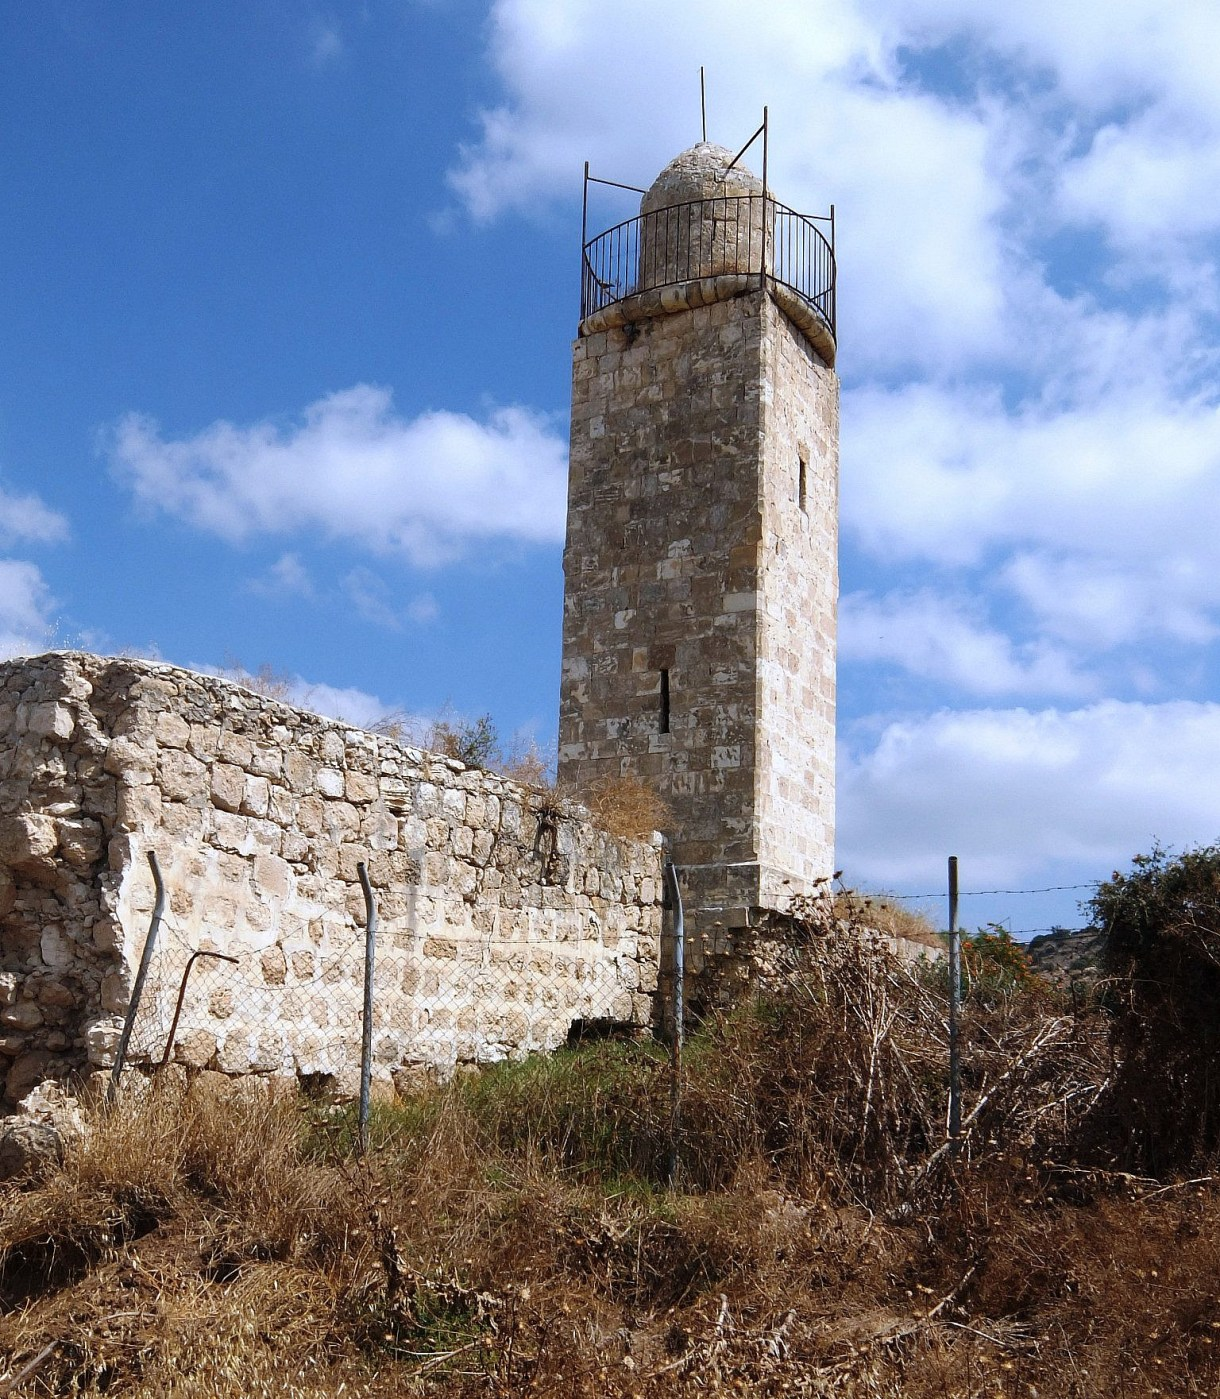 Remains of a minaret and mosque from an earlier period in Zakariah's history. Davidbena/Wikimedia Commons)